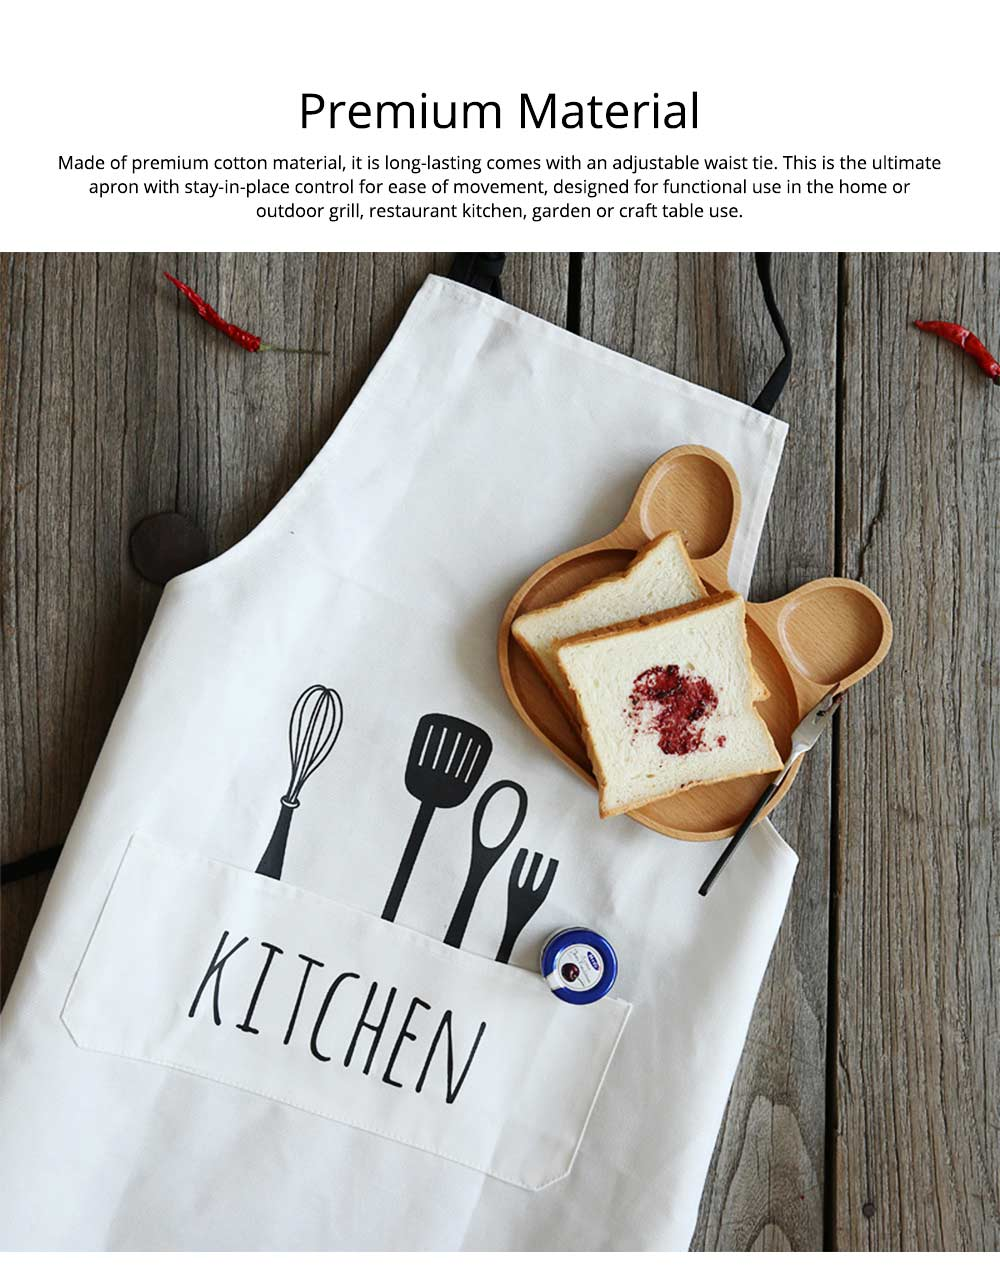 Creative Cotton Cutlery Pattern Apron with Adjustable 3 Pockets Design for Professional for BBQ, Baking, Cooking for Men & Women 1